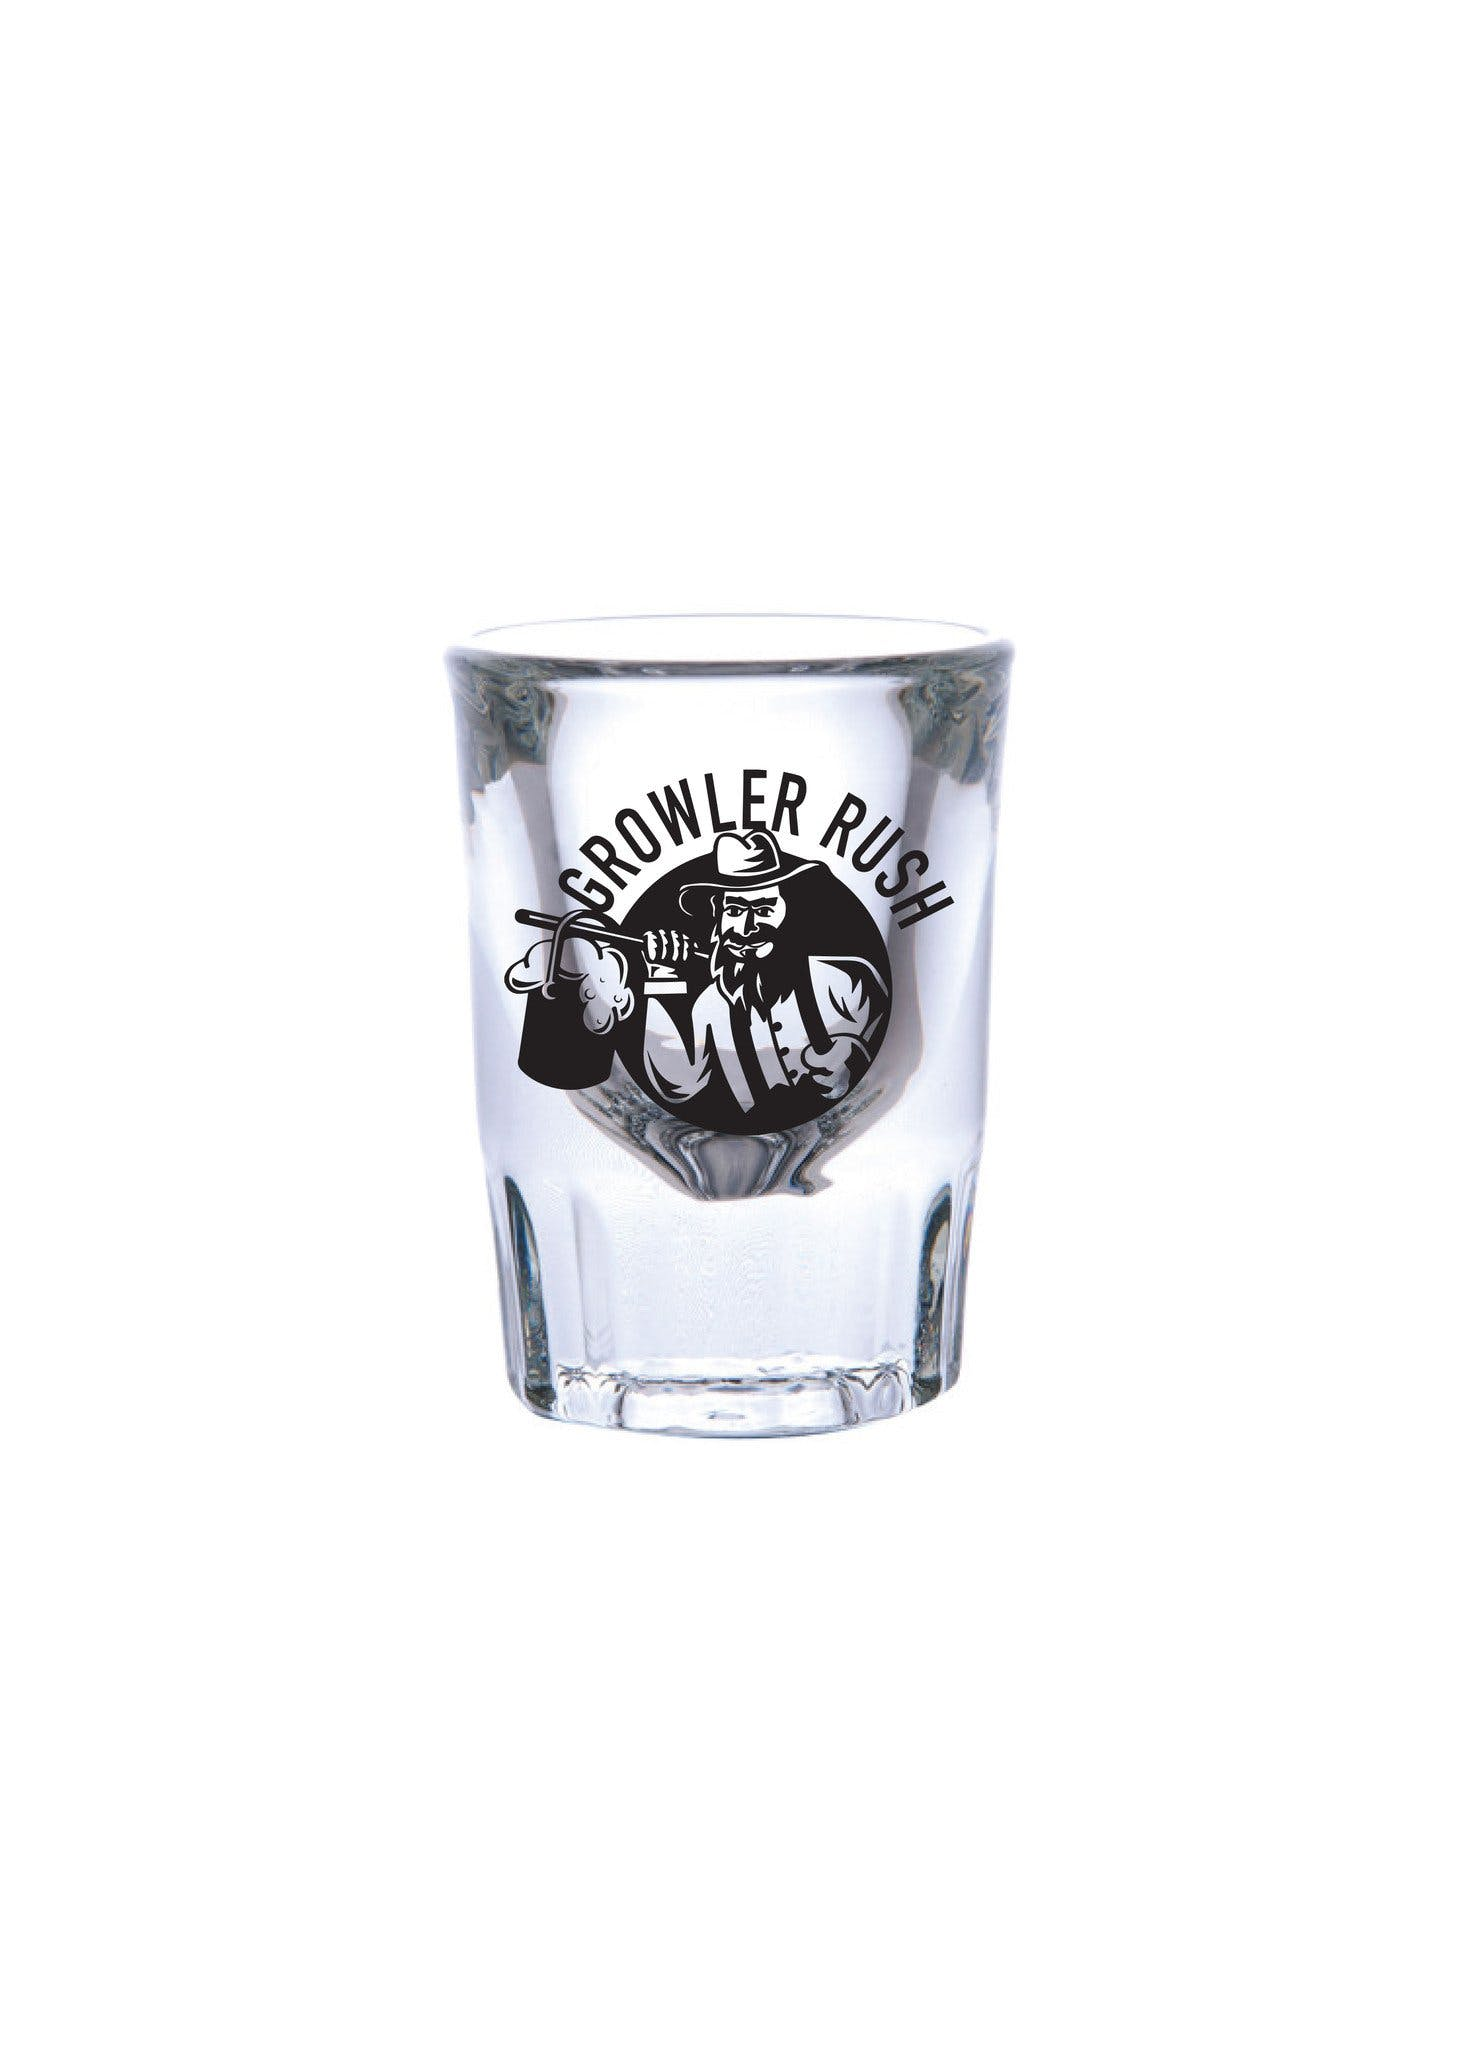 2 oz. Shot Glass Fluted #337 - sold by Clearwater Gear